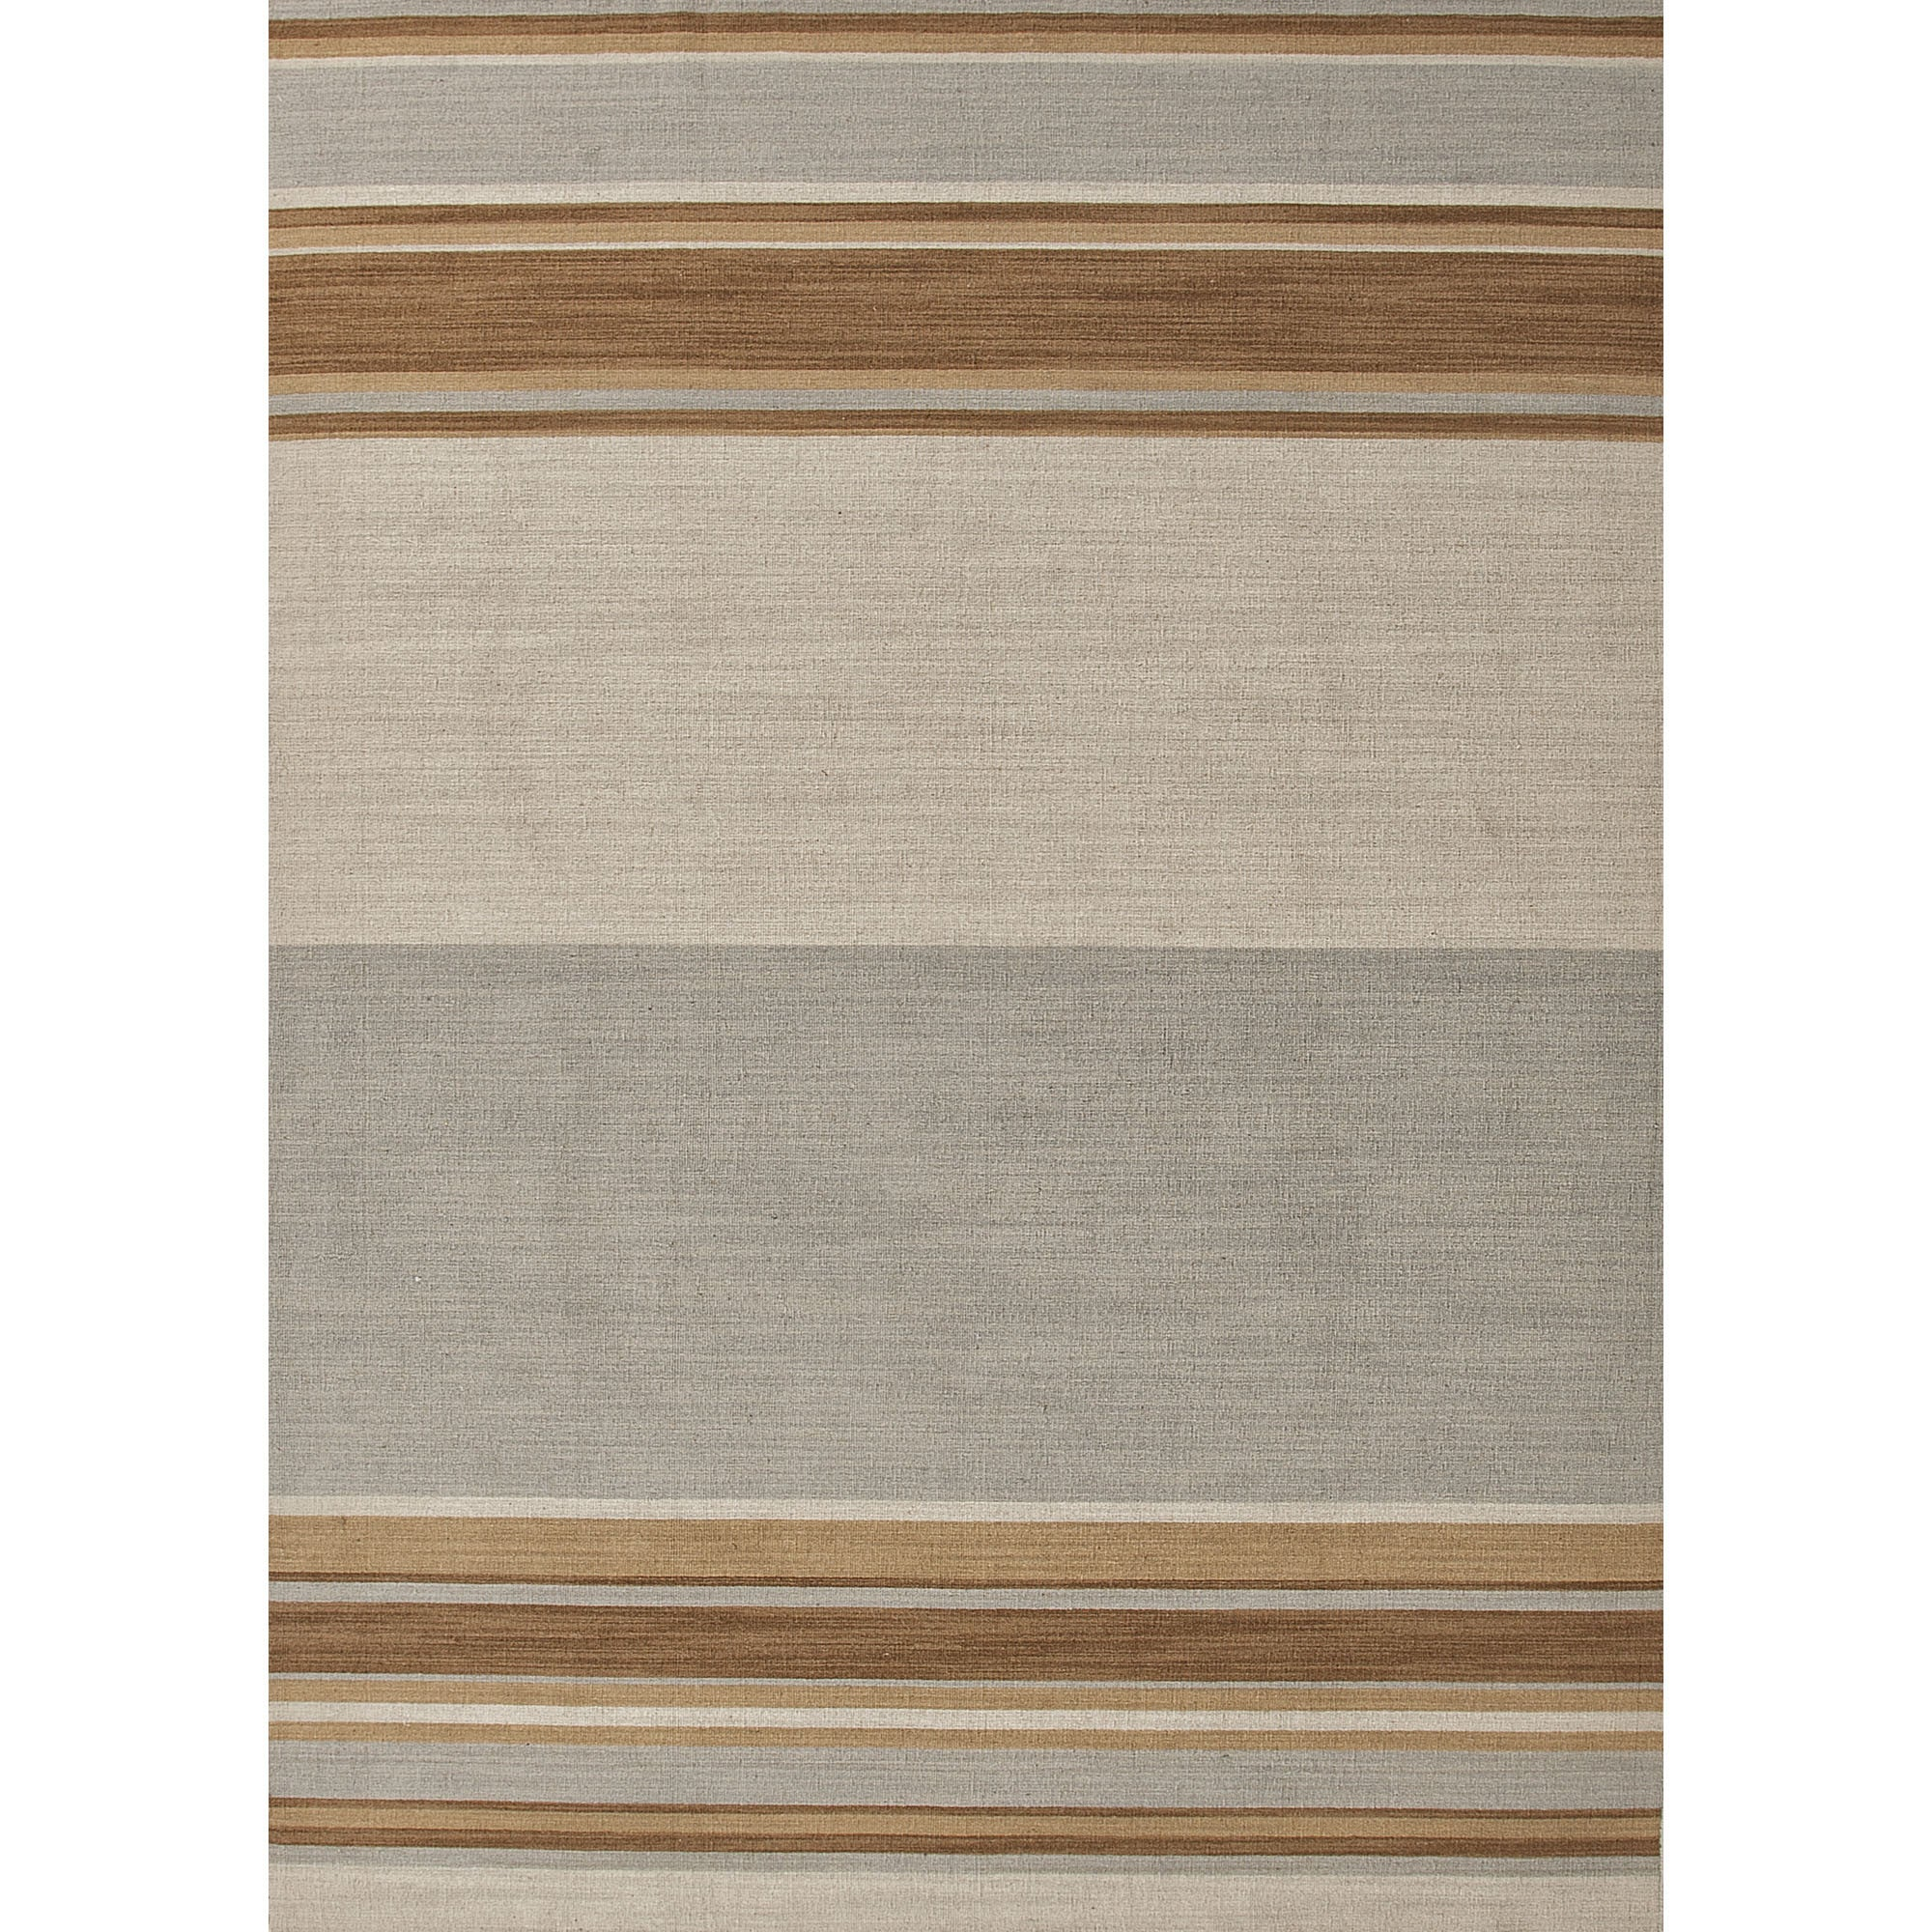 Jaipur Rugs FlatWeave Stripe Pattern Blue/Brown Wool Area Rug PV05  (Rectangle)